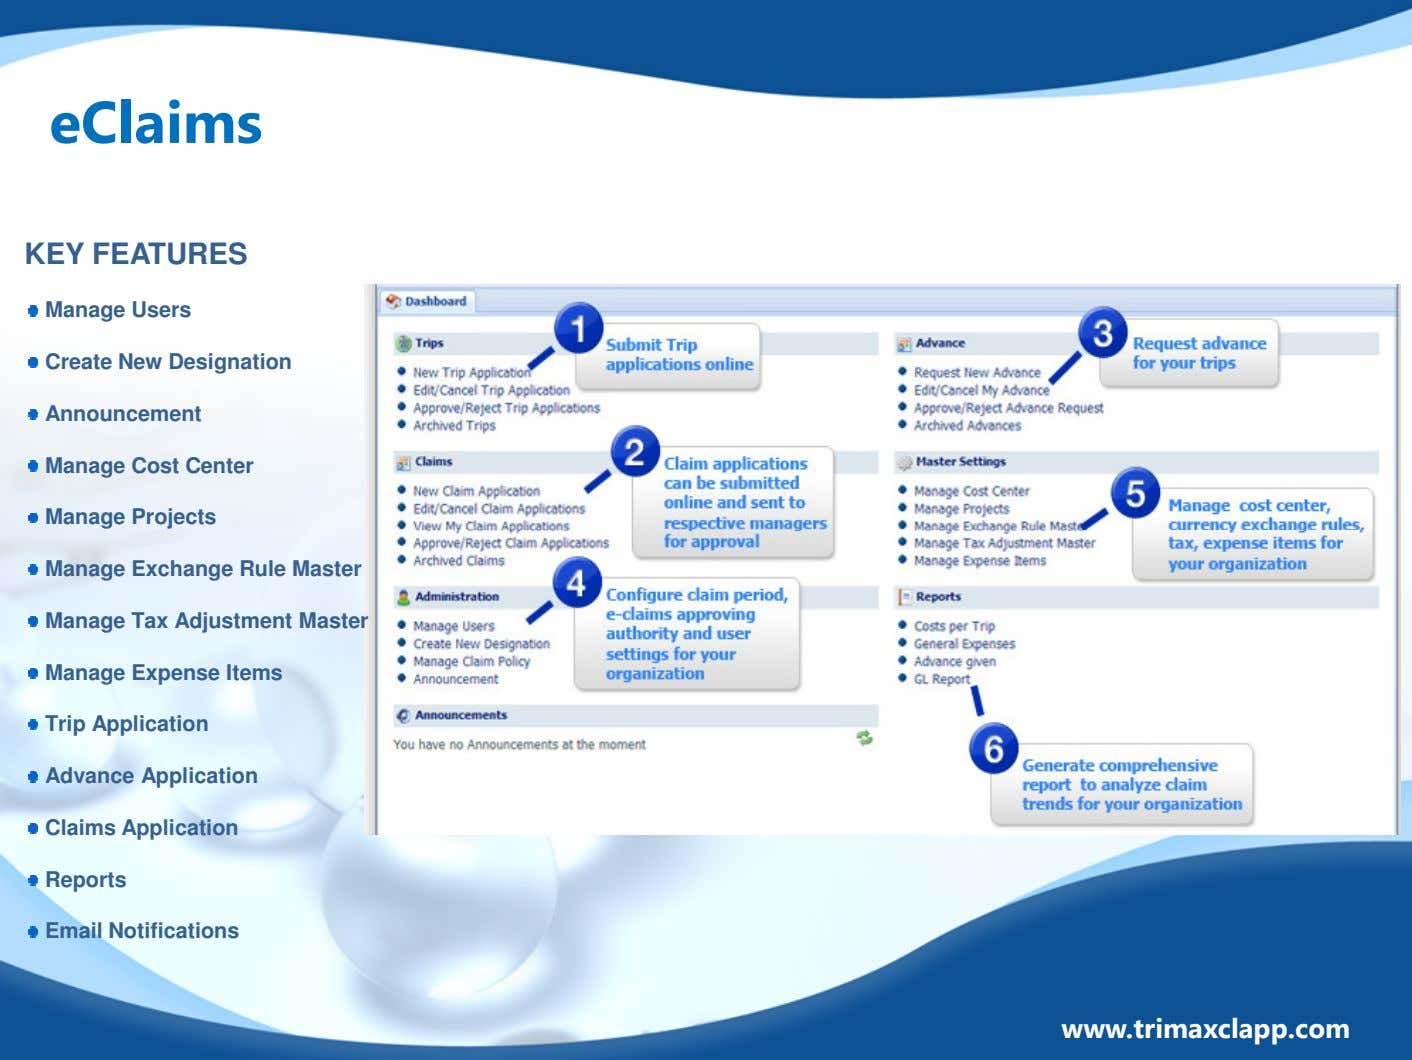 eClaims KEY FEATURES Manage Users Create New Designation Announcement Manage Cost Center Manage Projects Manage